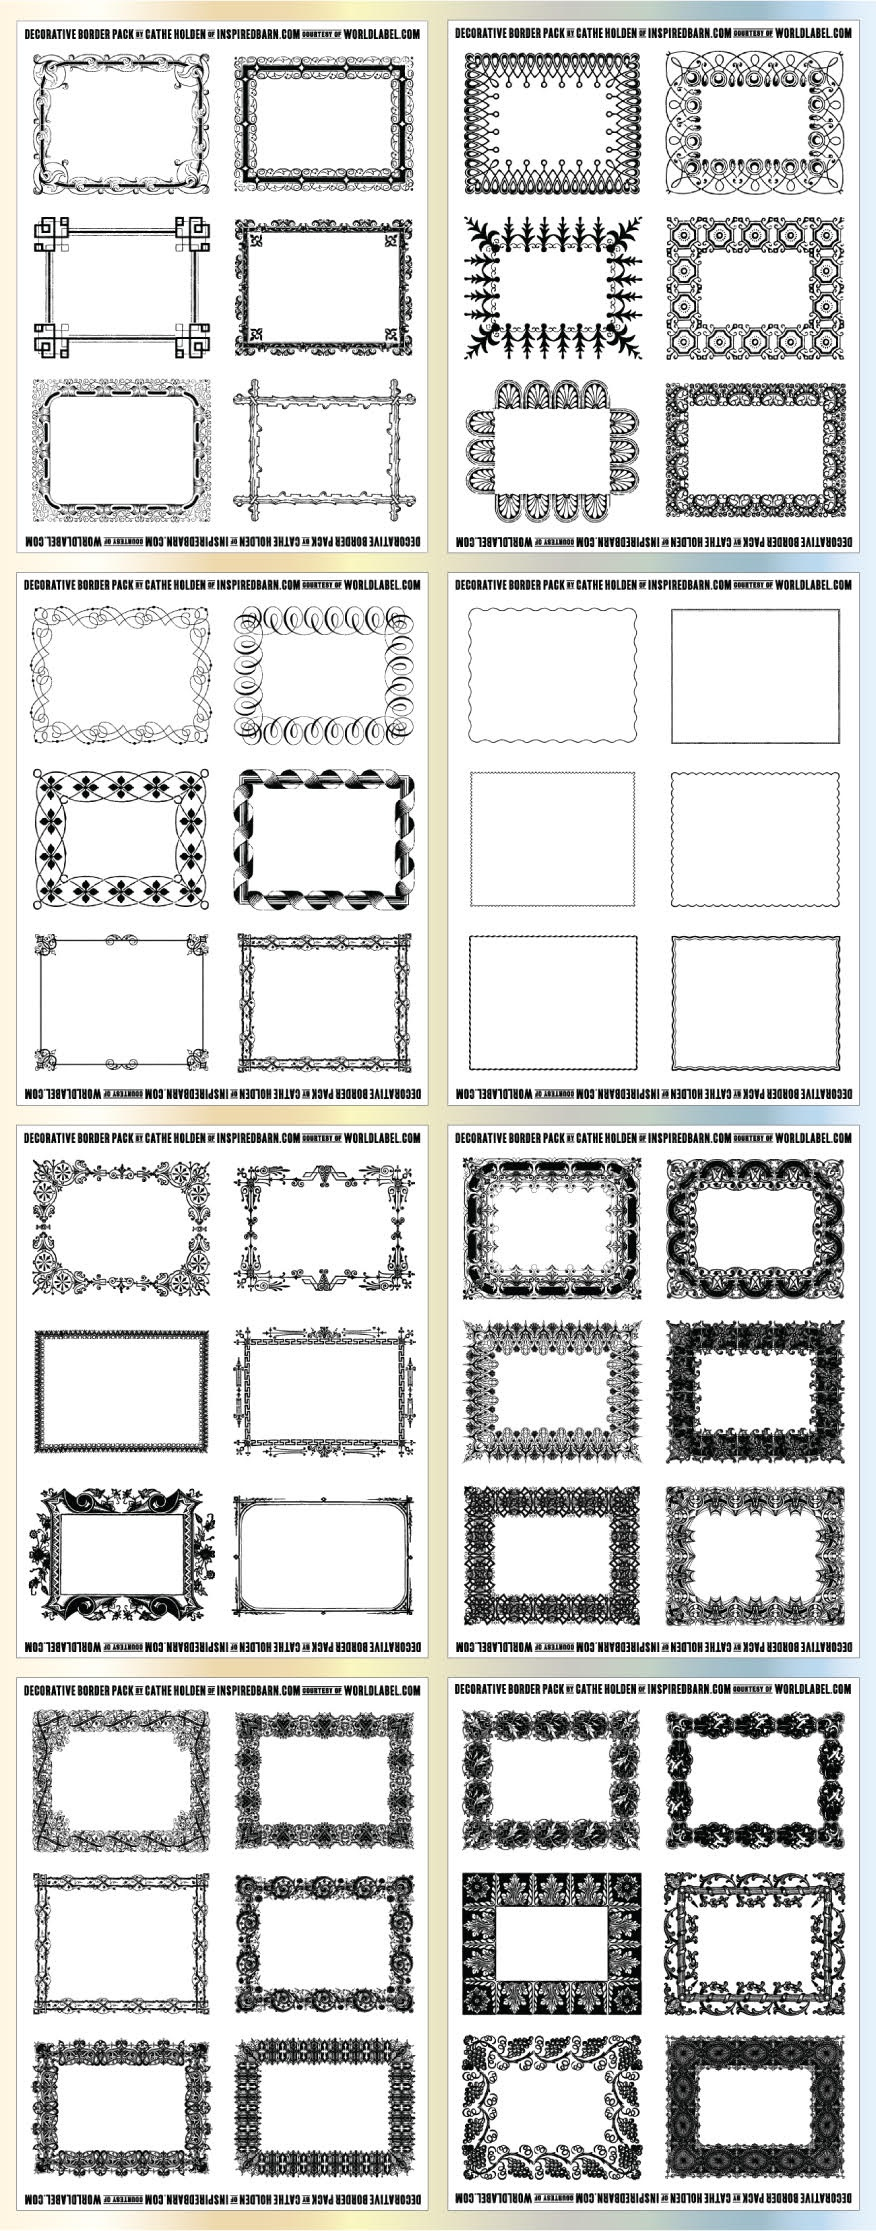 Free Printable Labels & Templates, Label Design @worldlabel Blog - Free Printable File Folder Labels